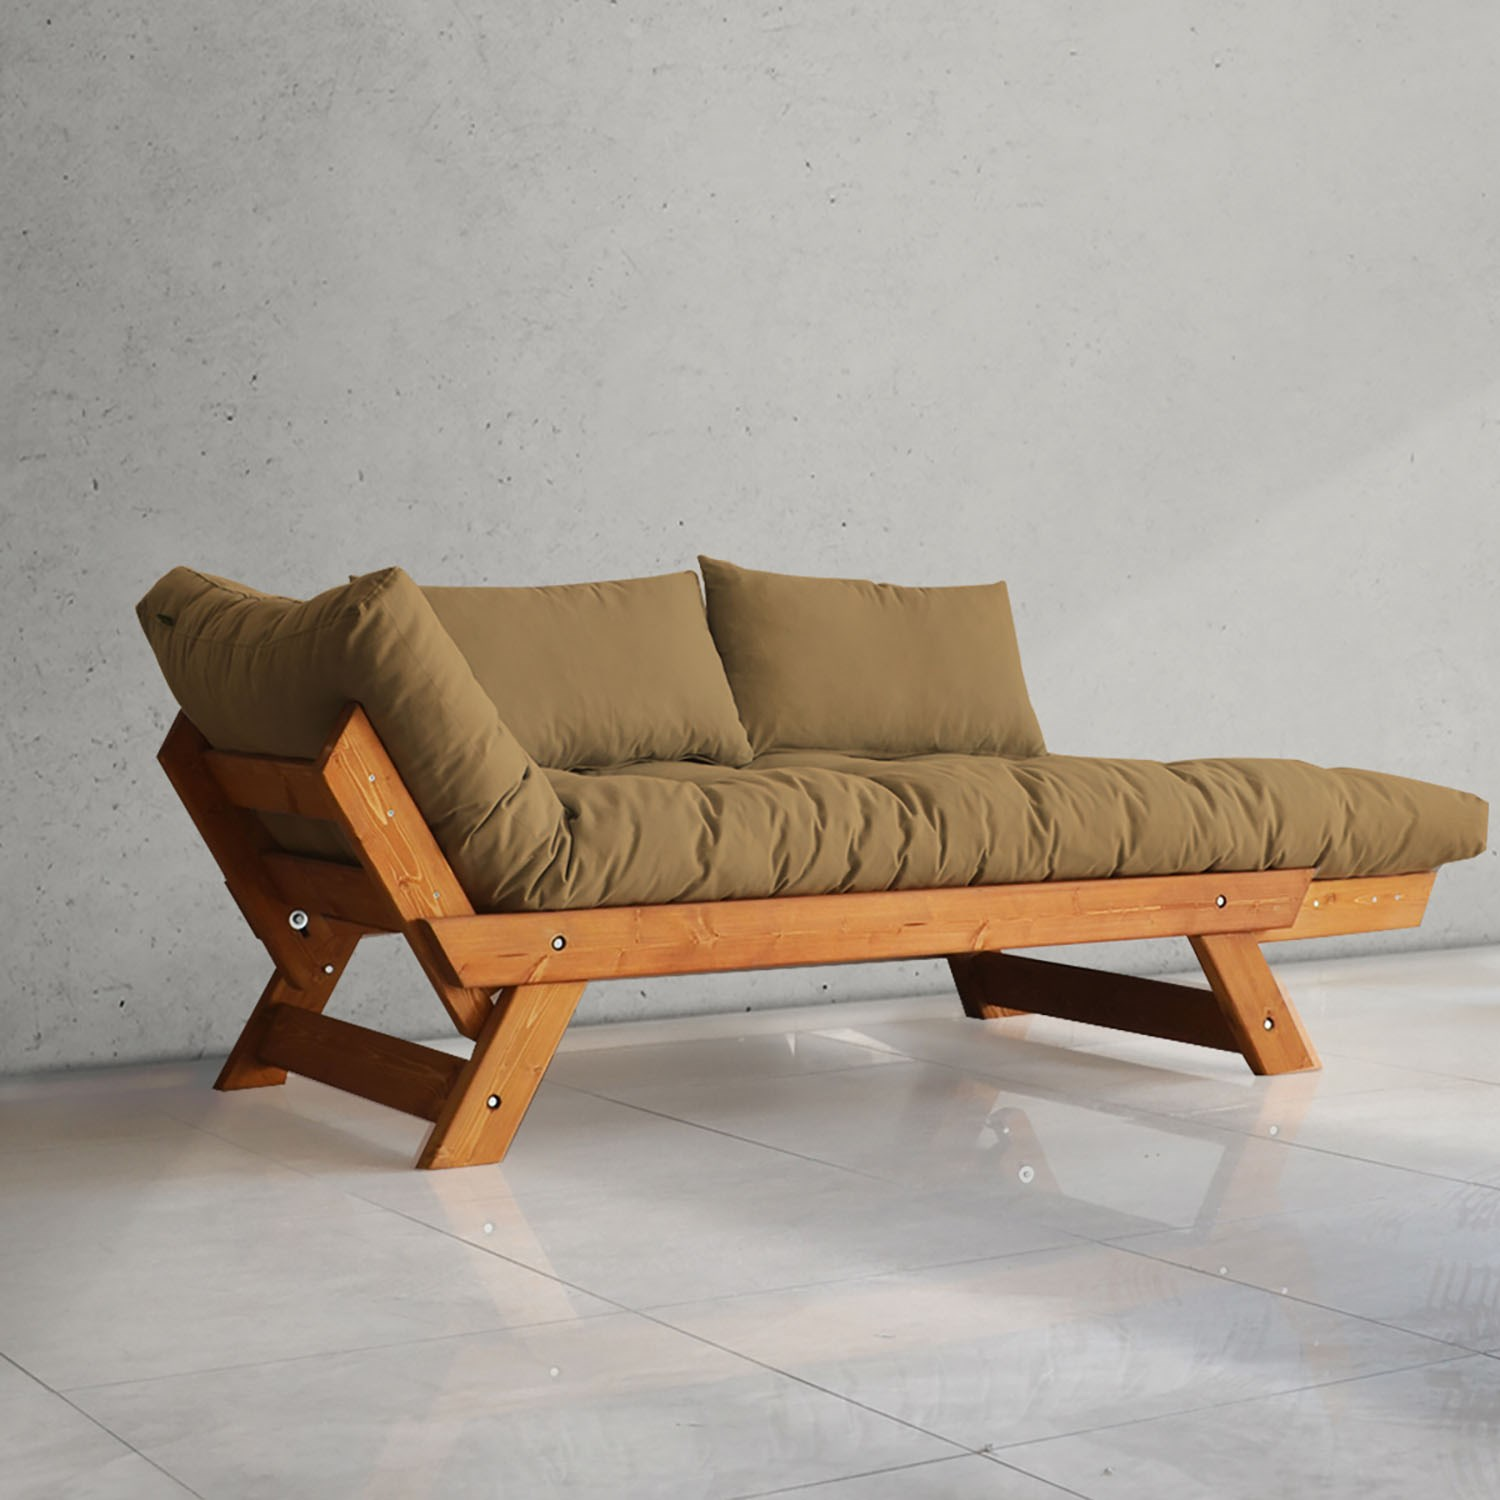 Mive Wooden Couch Armchair Bed For